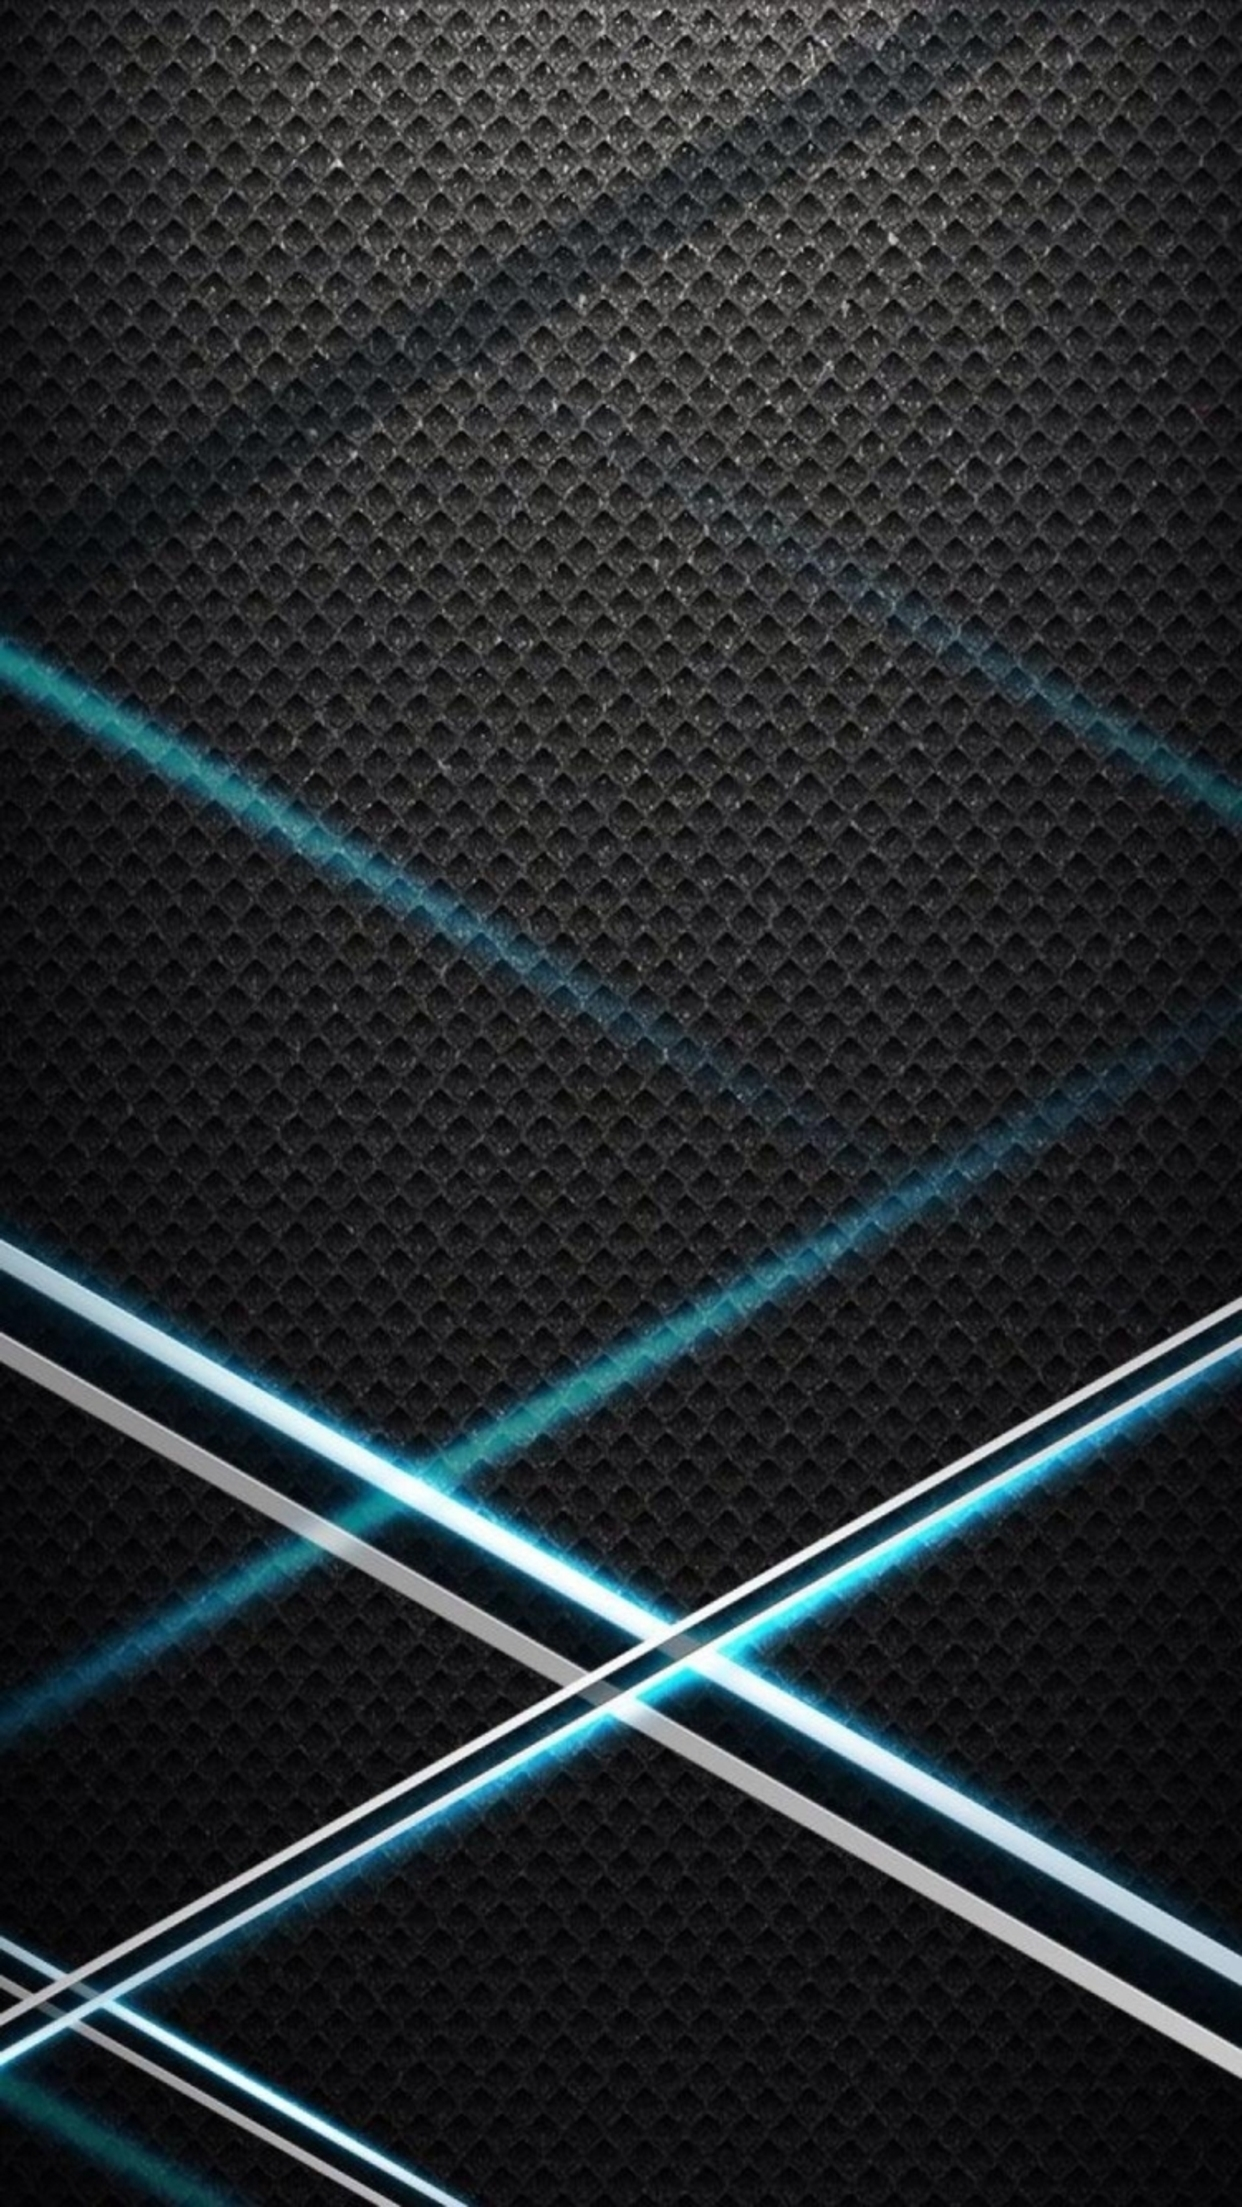 iPhone 7 Plus Wallpaper 1242x2207